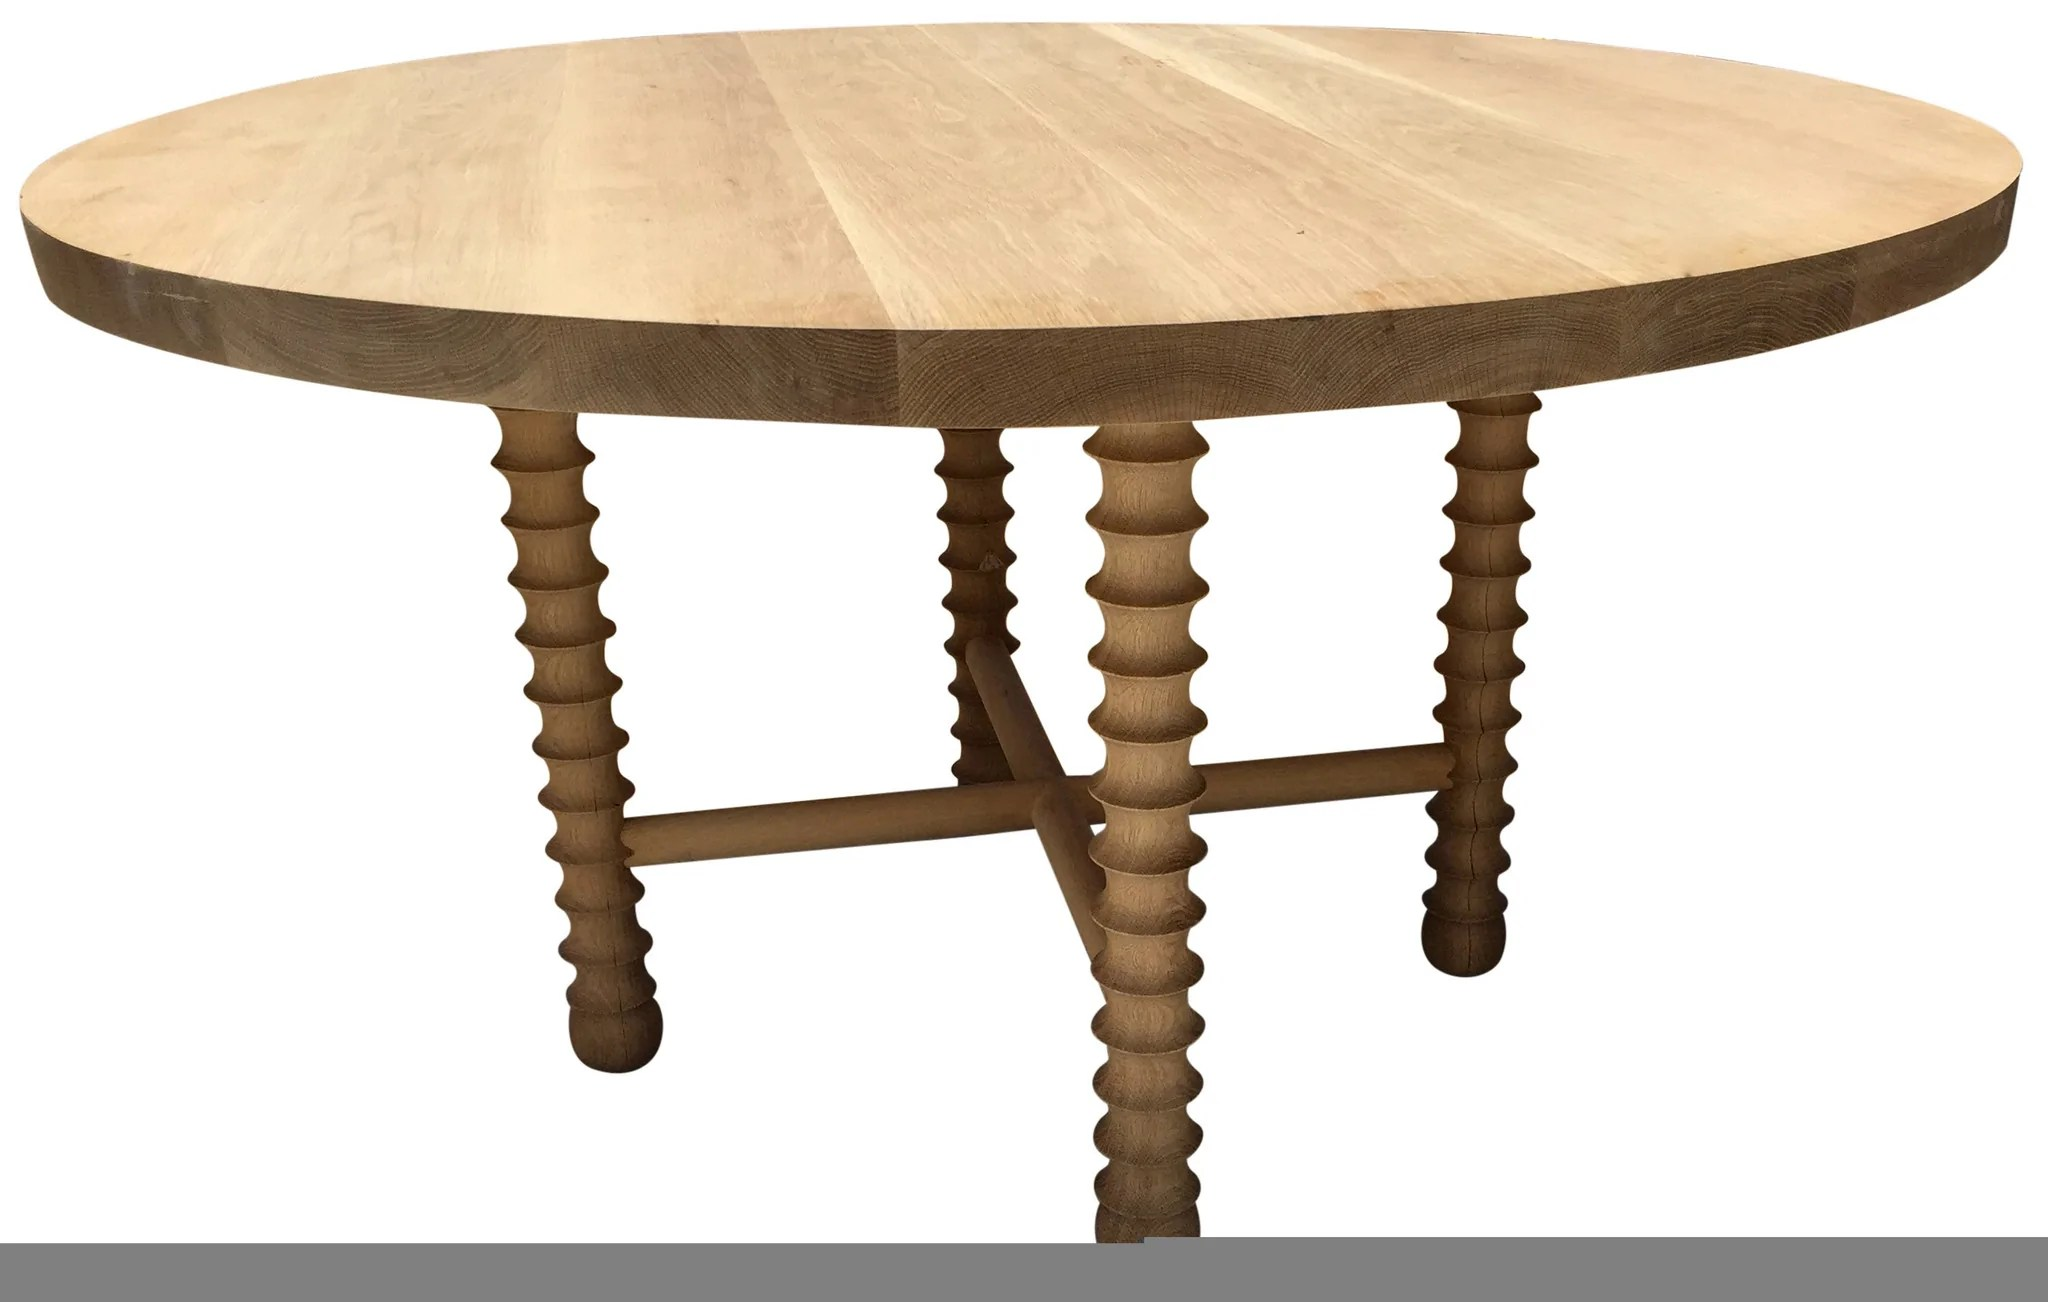 Round Oak Dining Table Modern Large White Oak Round Dining Table Haskell Design